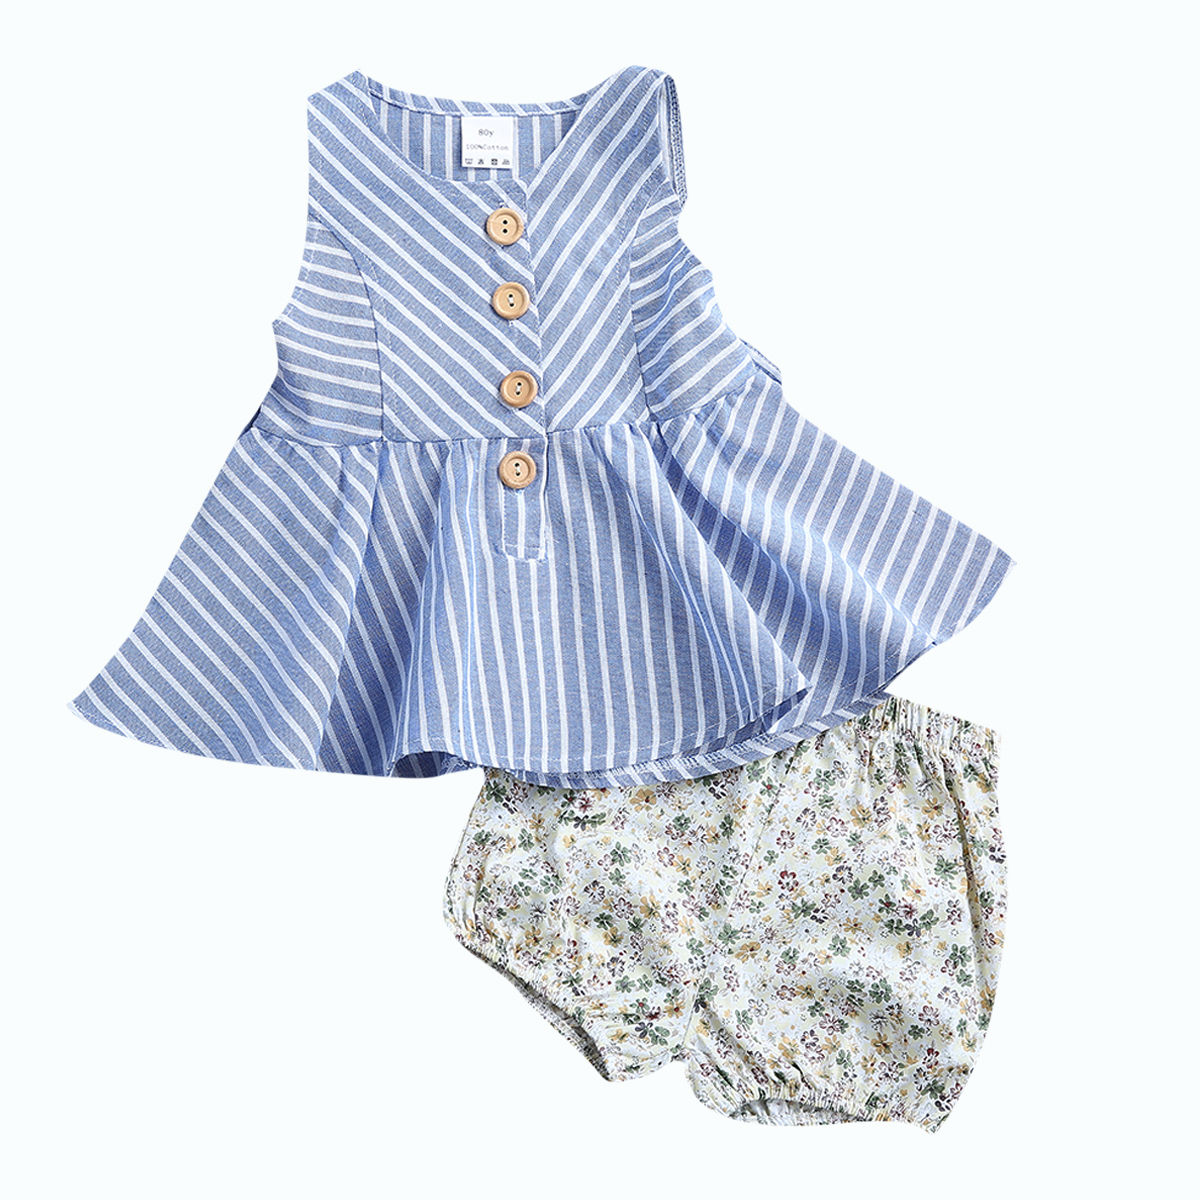 2PCS Toddler Girls Clothes Set 2017 Summer Sleeveless Button Stripped Dress Tops+Floral Shorts Hot Pant Outfits Kids Clothing